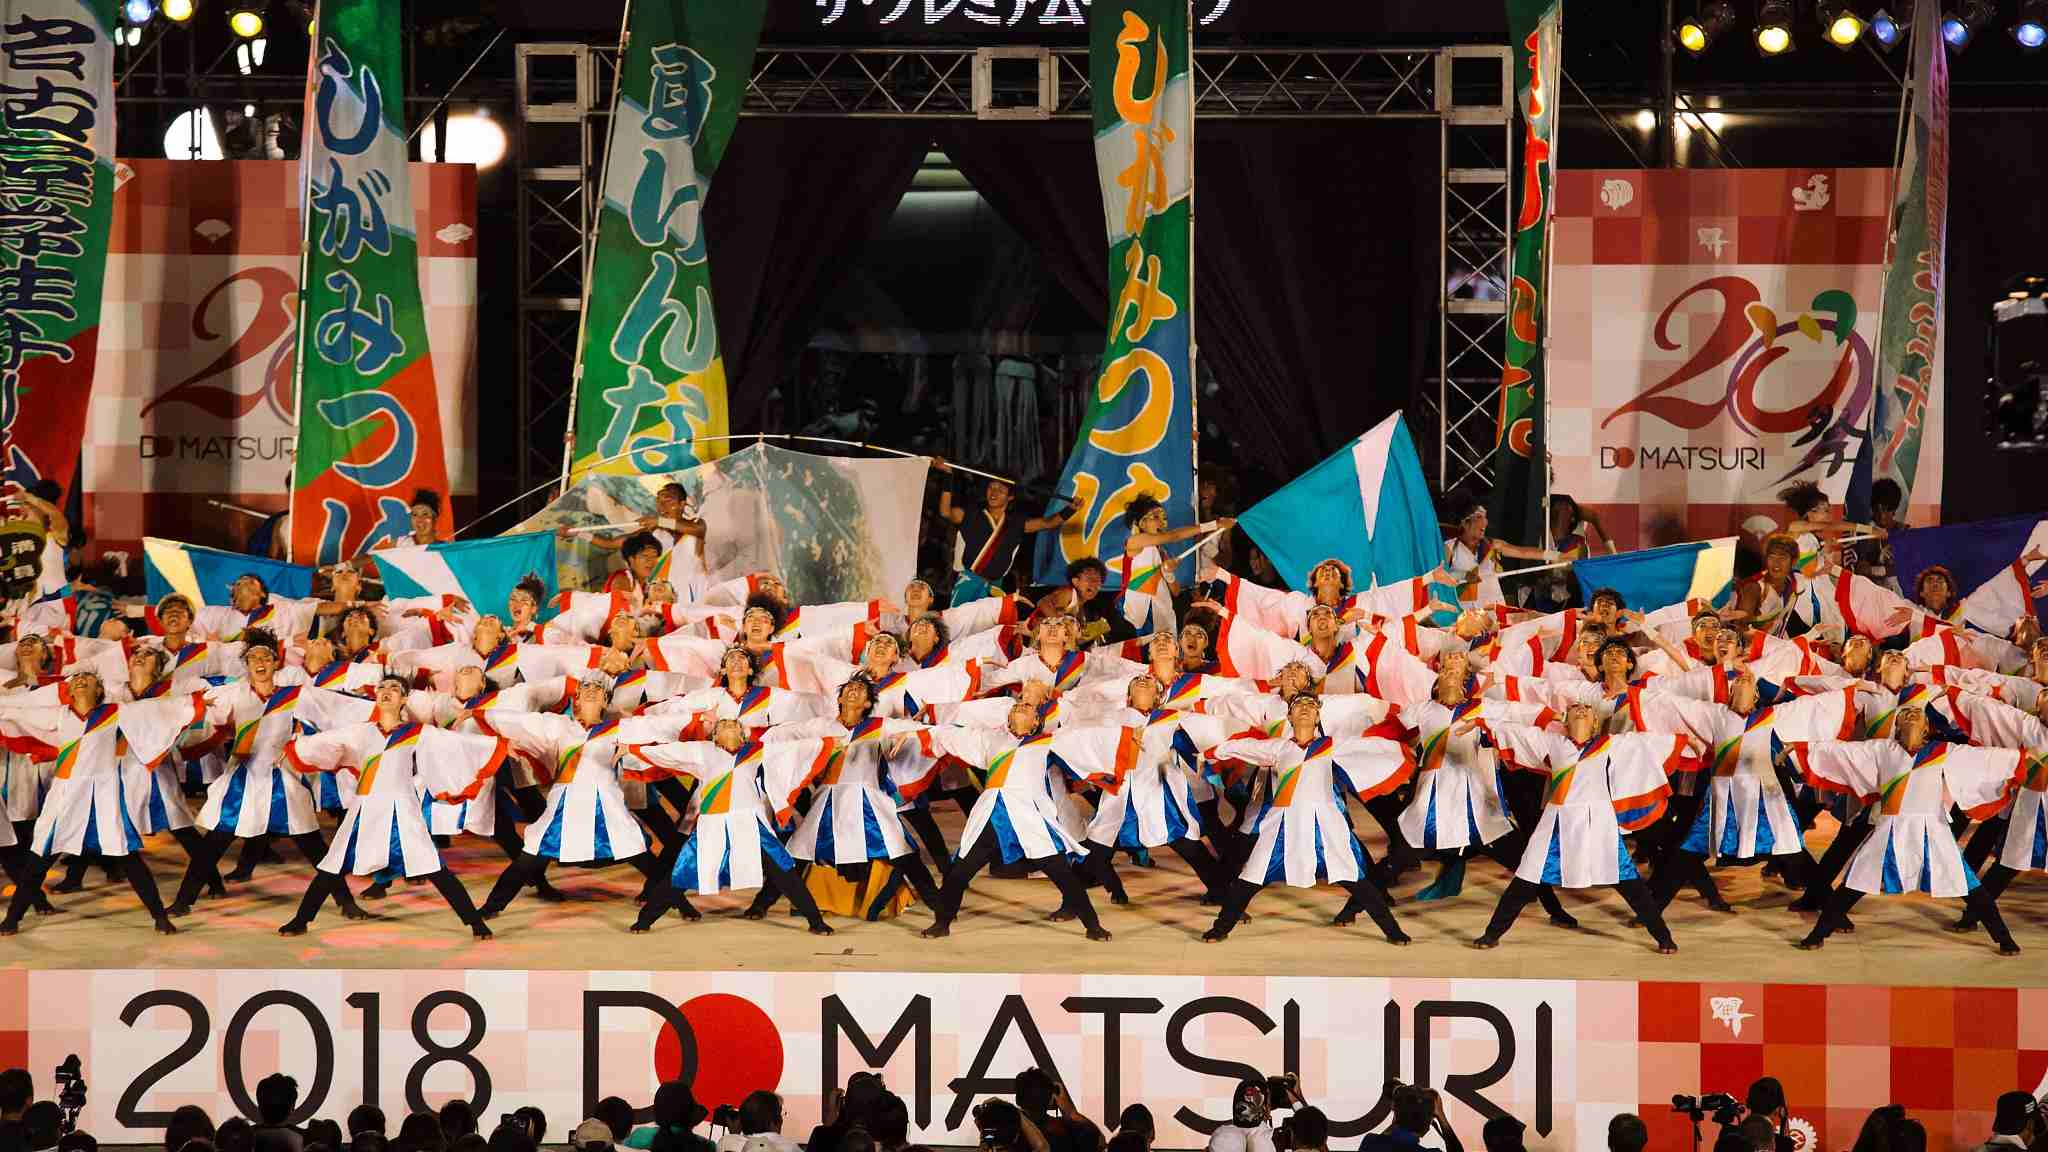 2018 Nippon Domannaka Festival celebrated in Japan